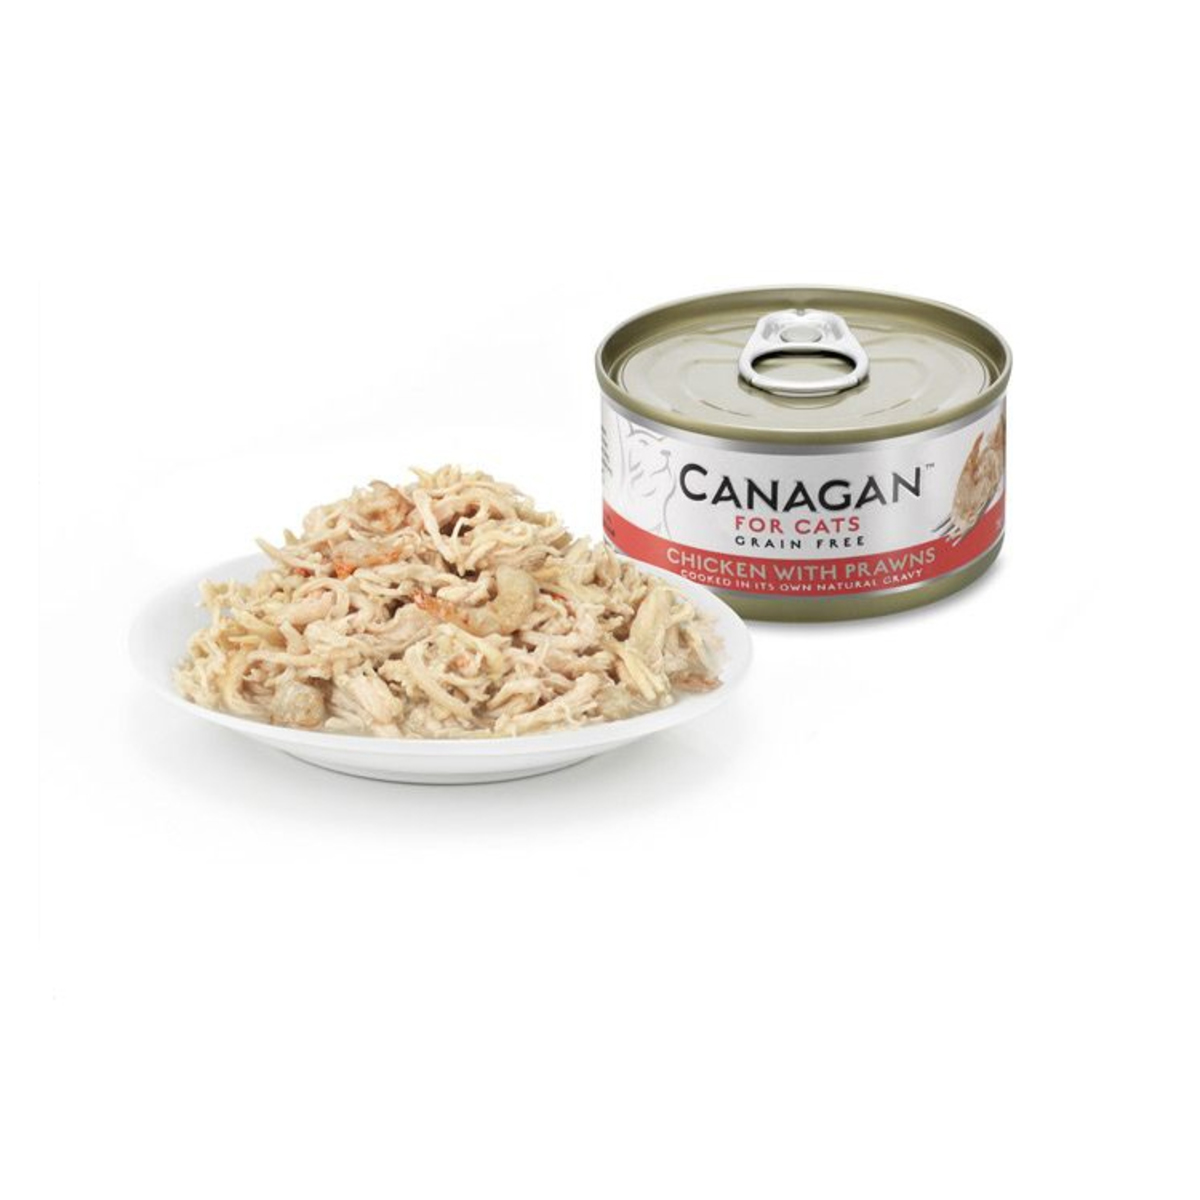 Canned gluten-free chicken with shrimp cat - 75g